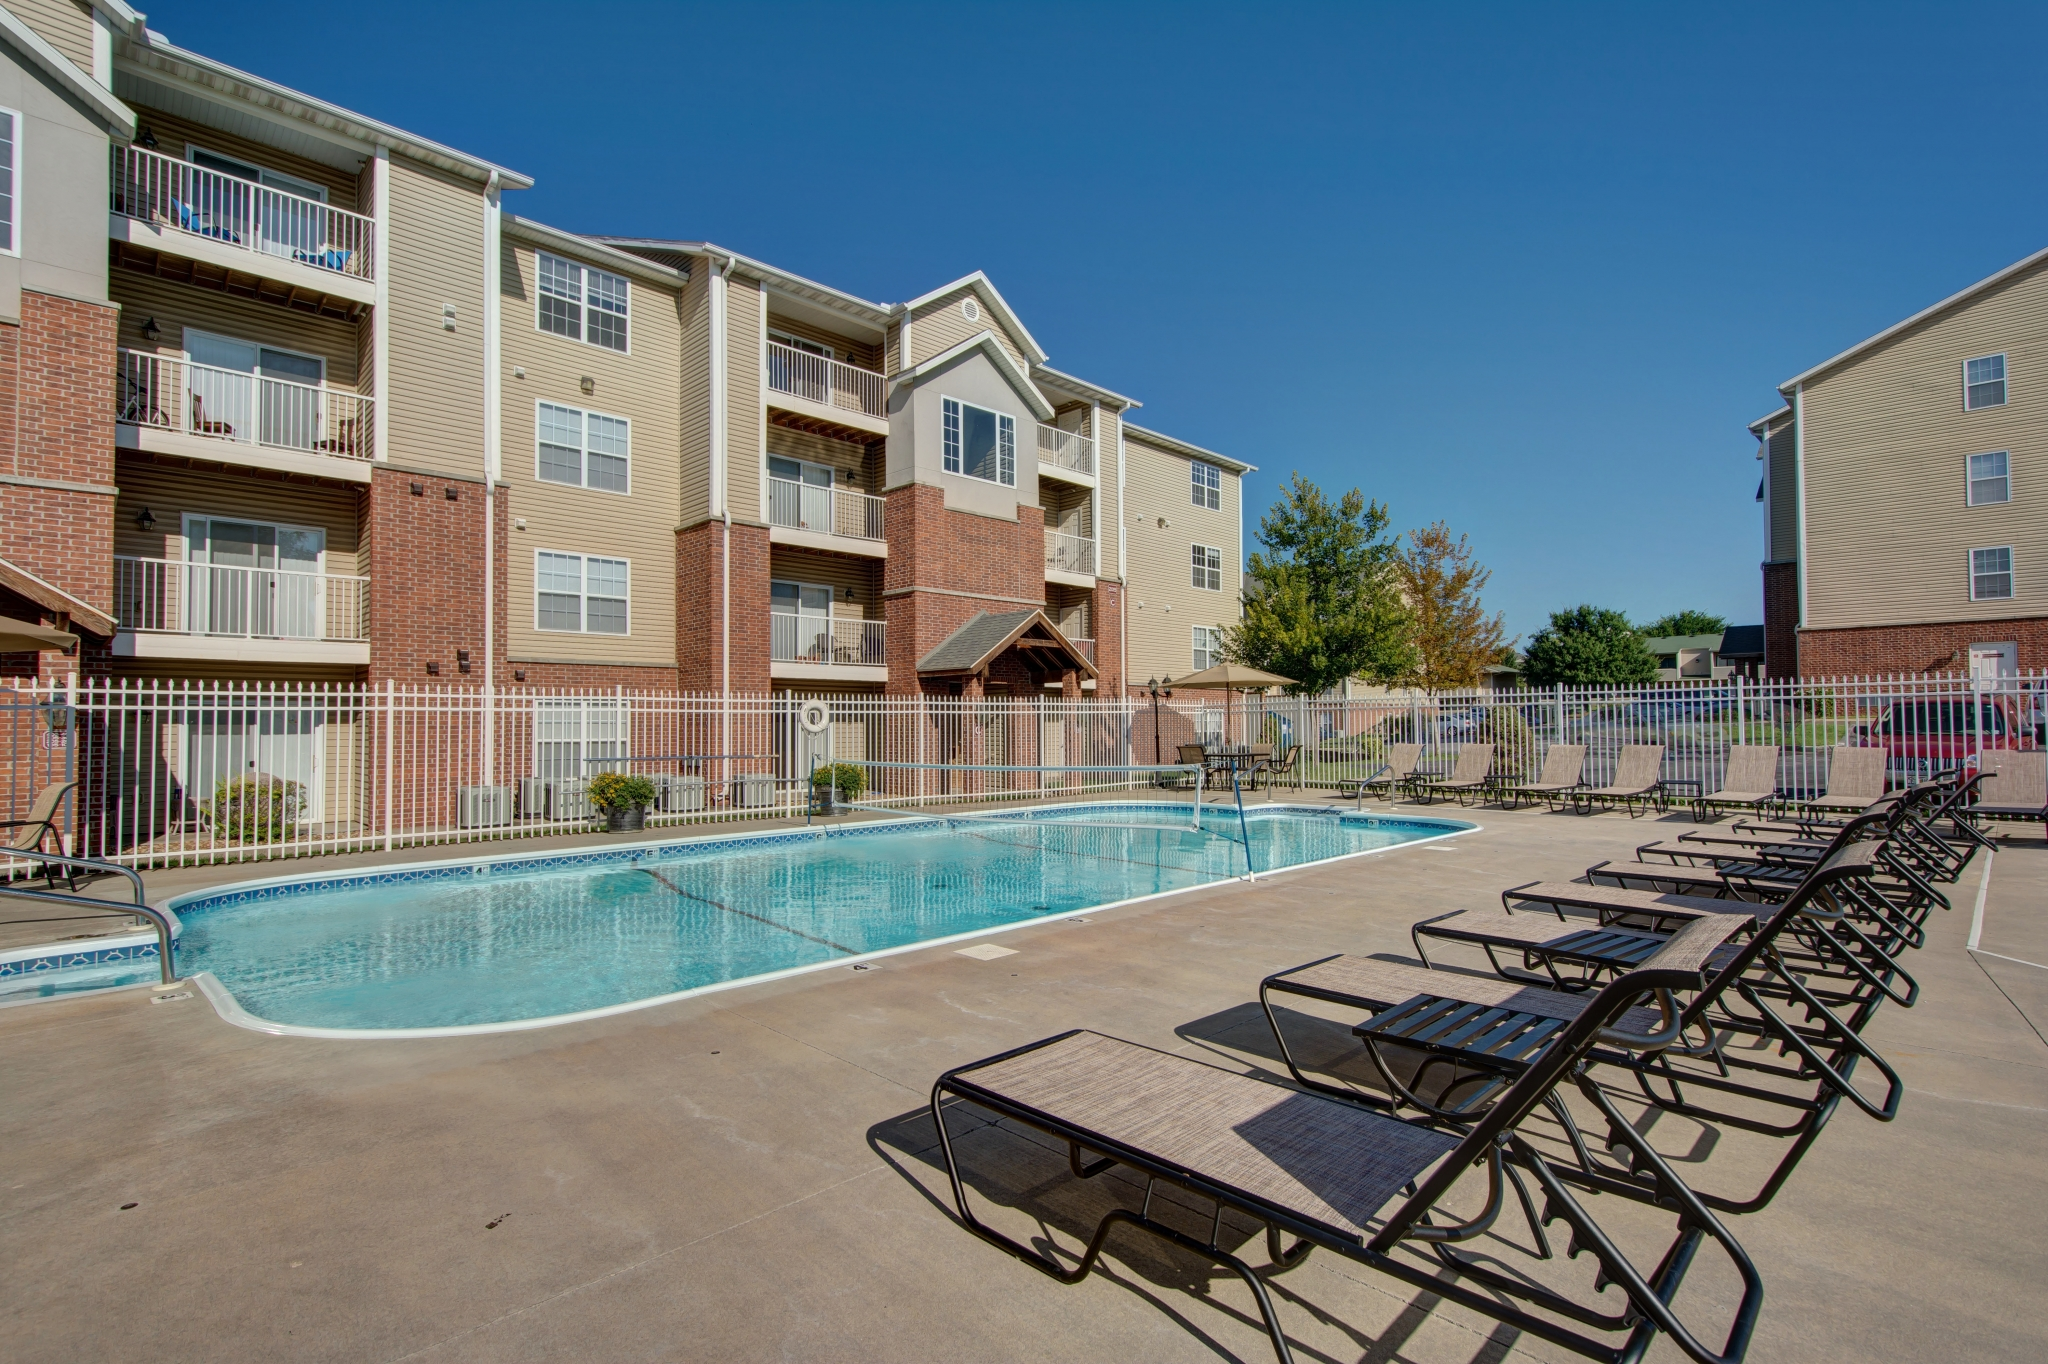 Apartment Community In Springfield Coryell Crossing